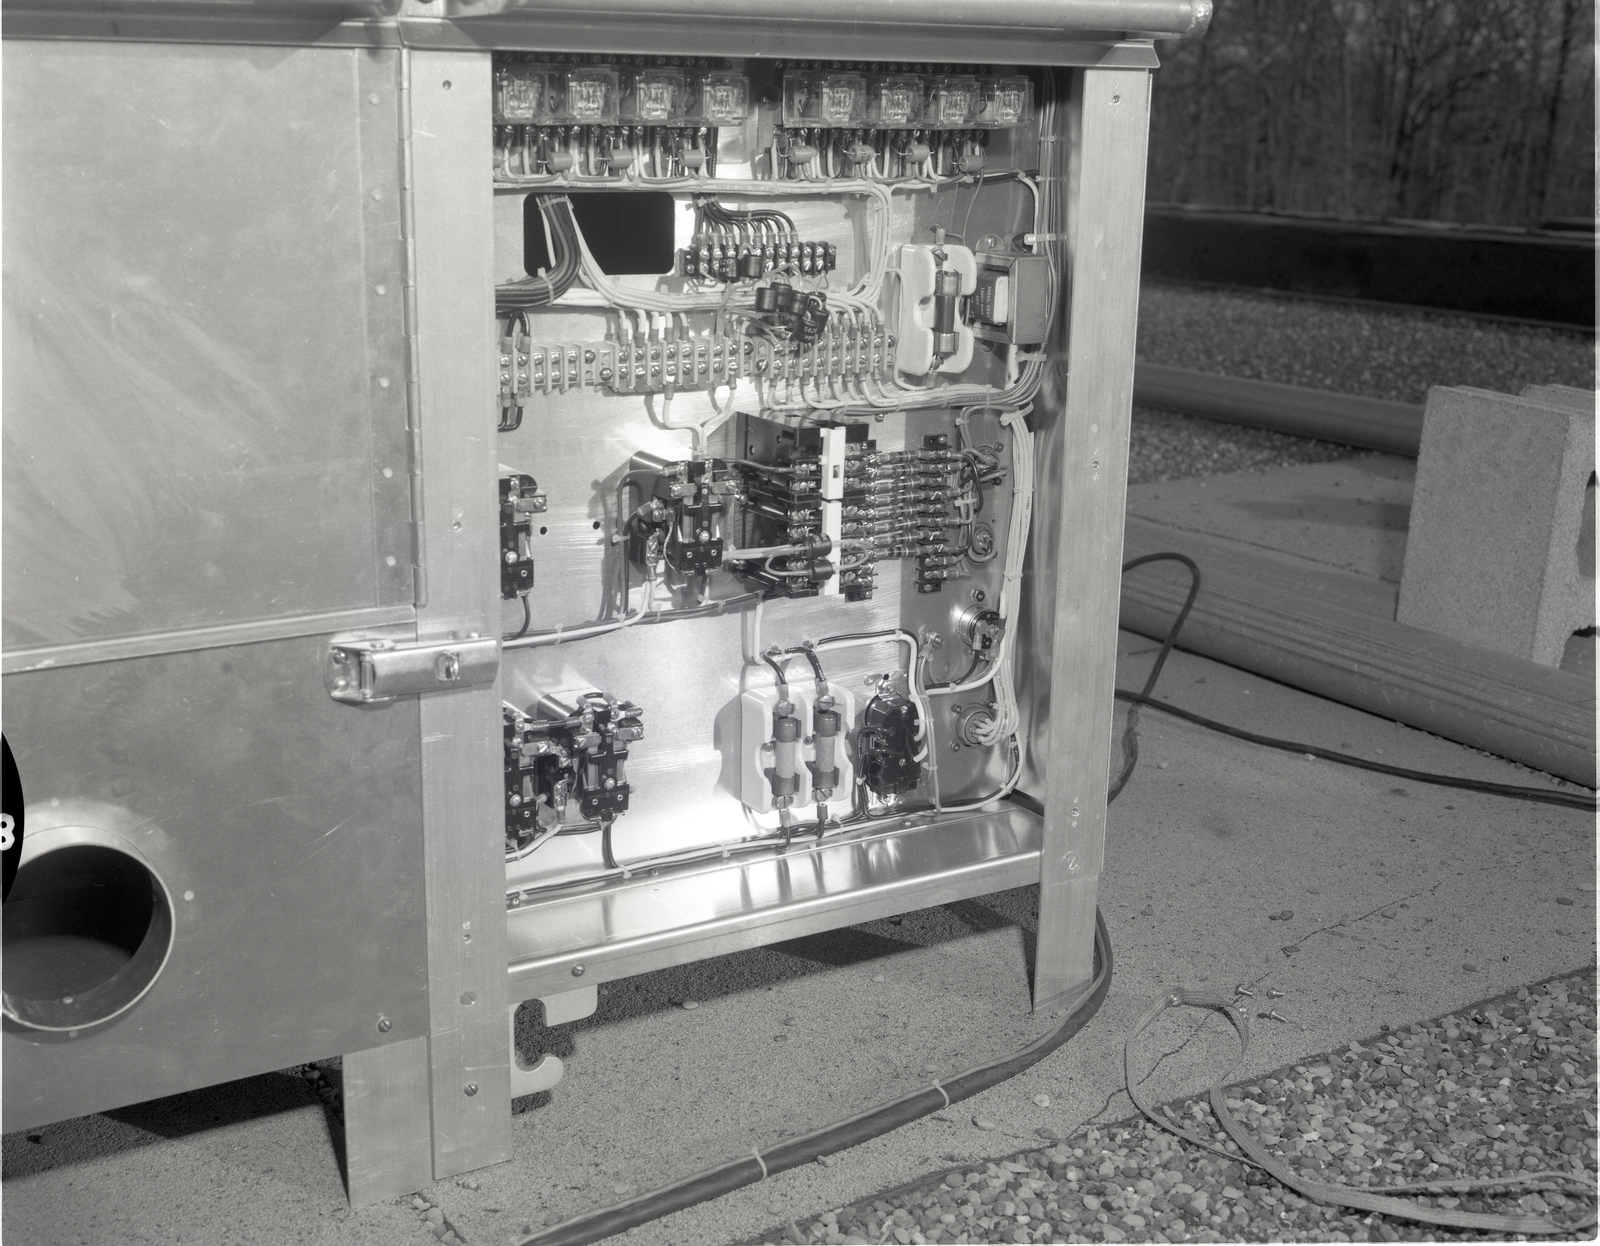 AIR SAMPLER POWER PANEL ON THE ROOF OF THE ENERGY CONVERSION LABORATORY ECL